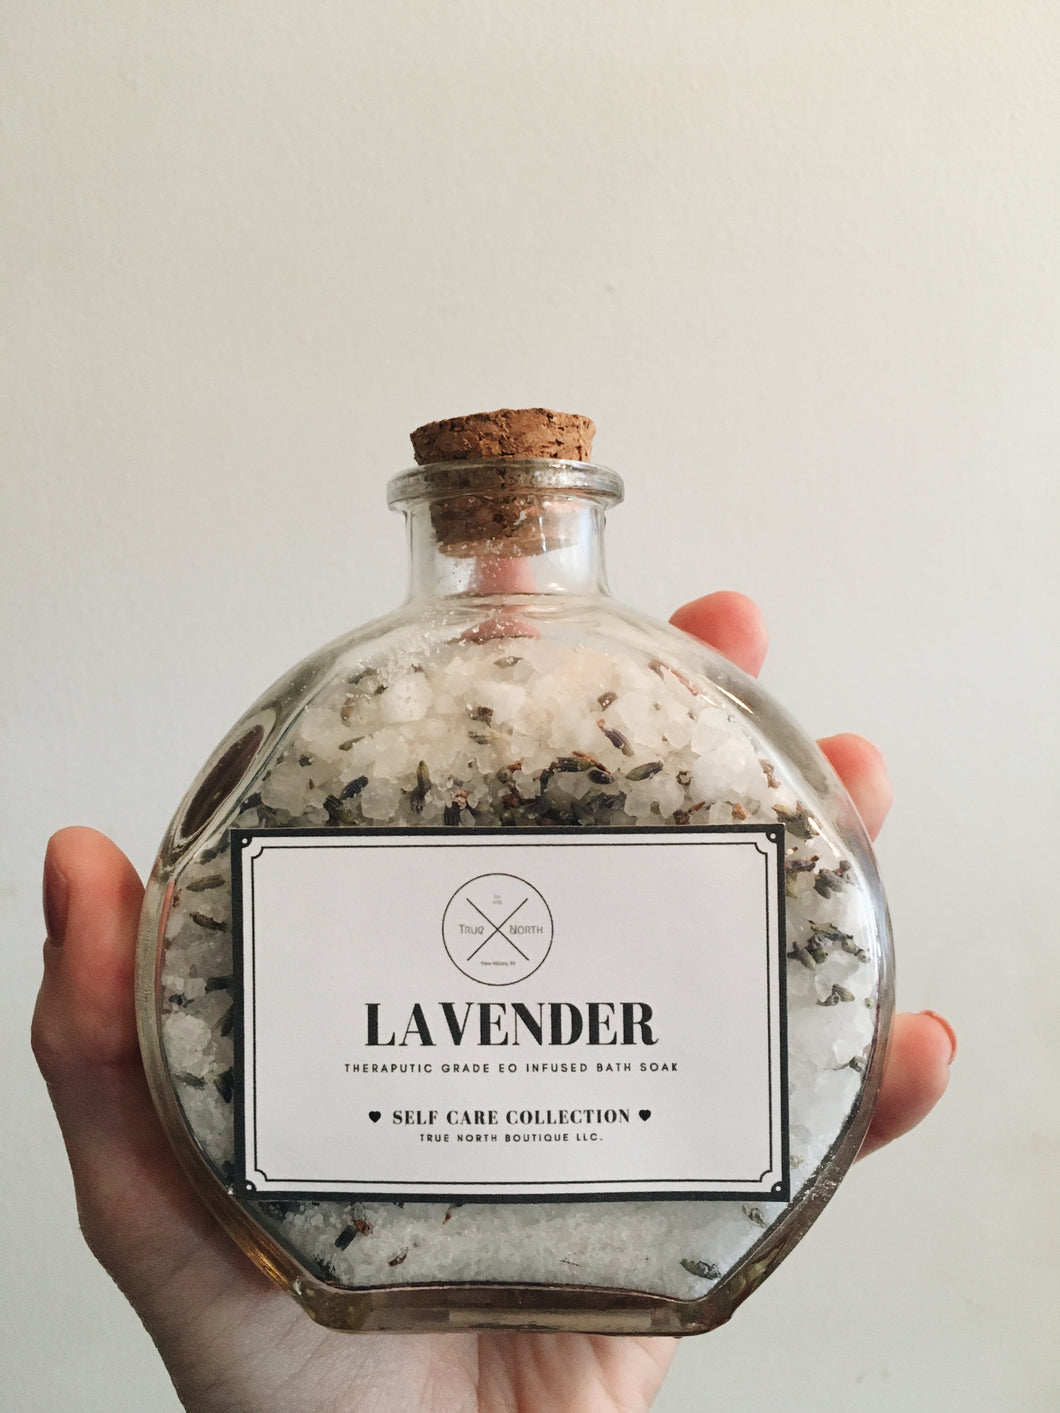 6 oz. Lavender Bath Soak